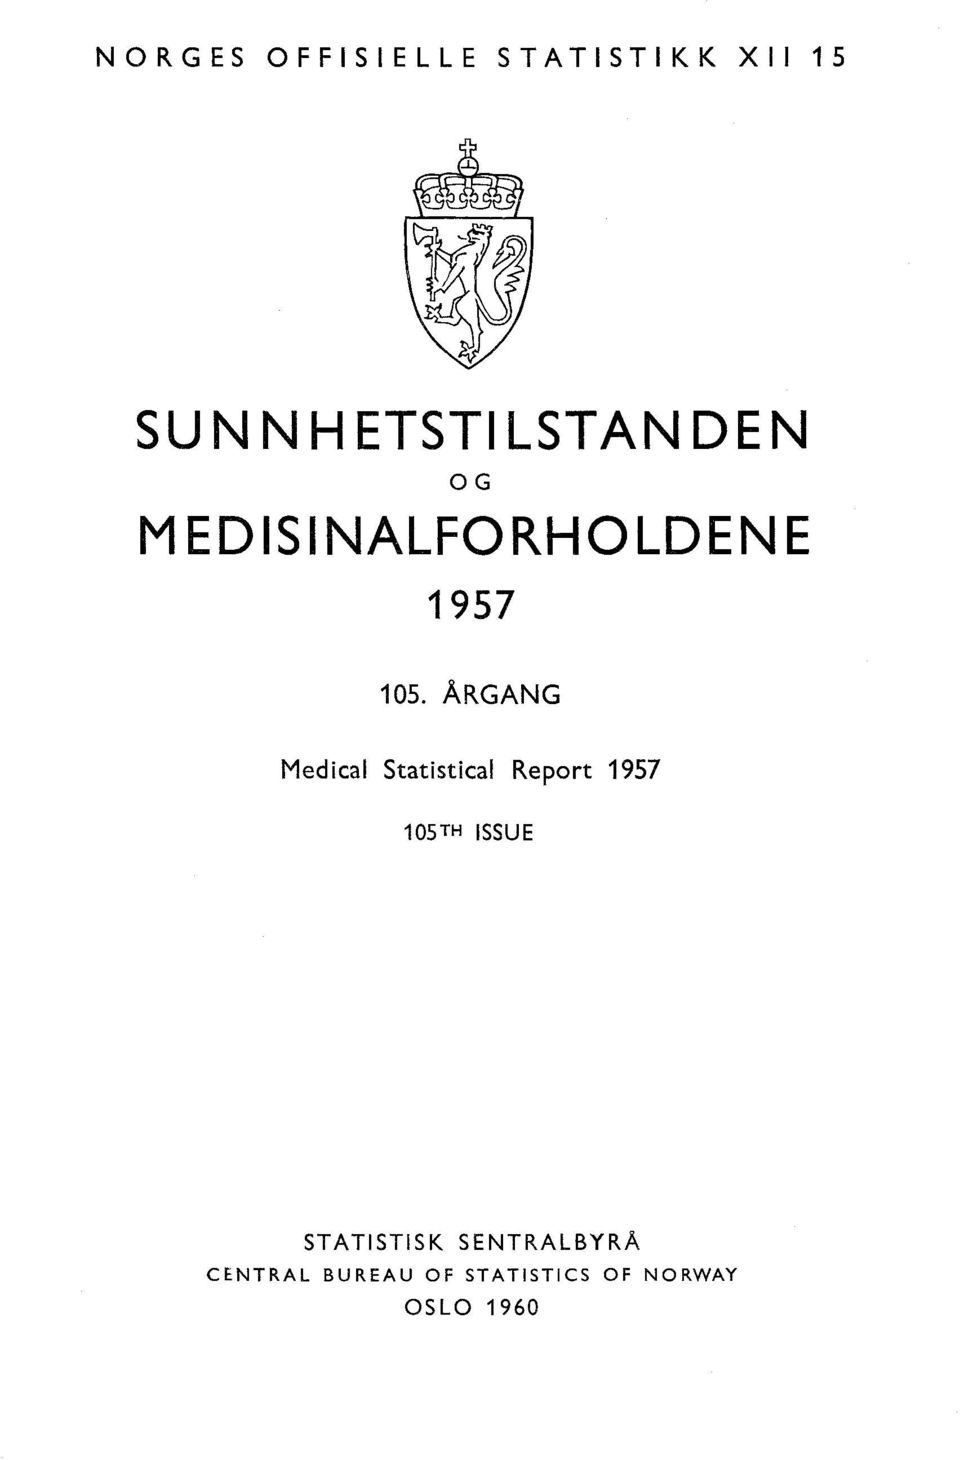 ÅRGANG Medical Statistical Report 957 05TH ISSUE